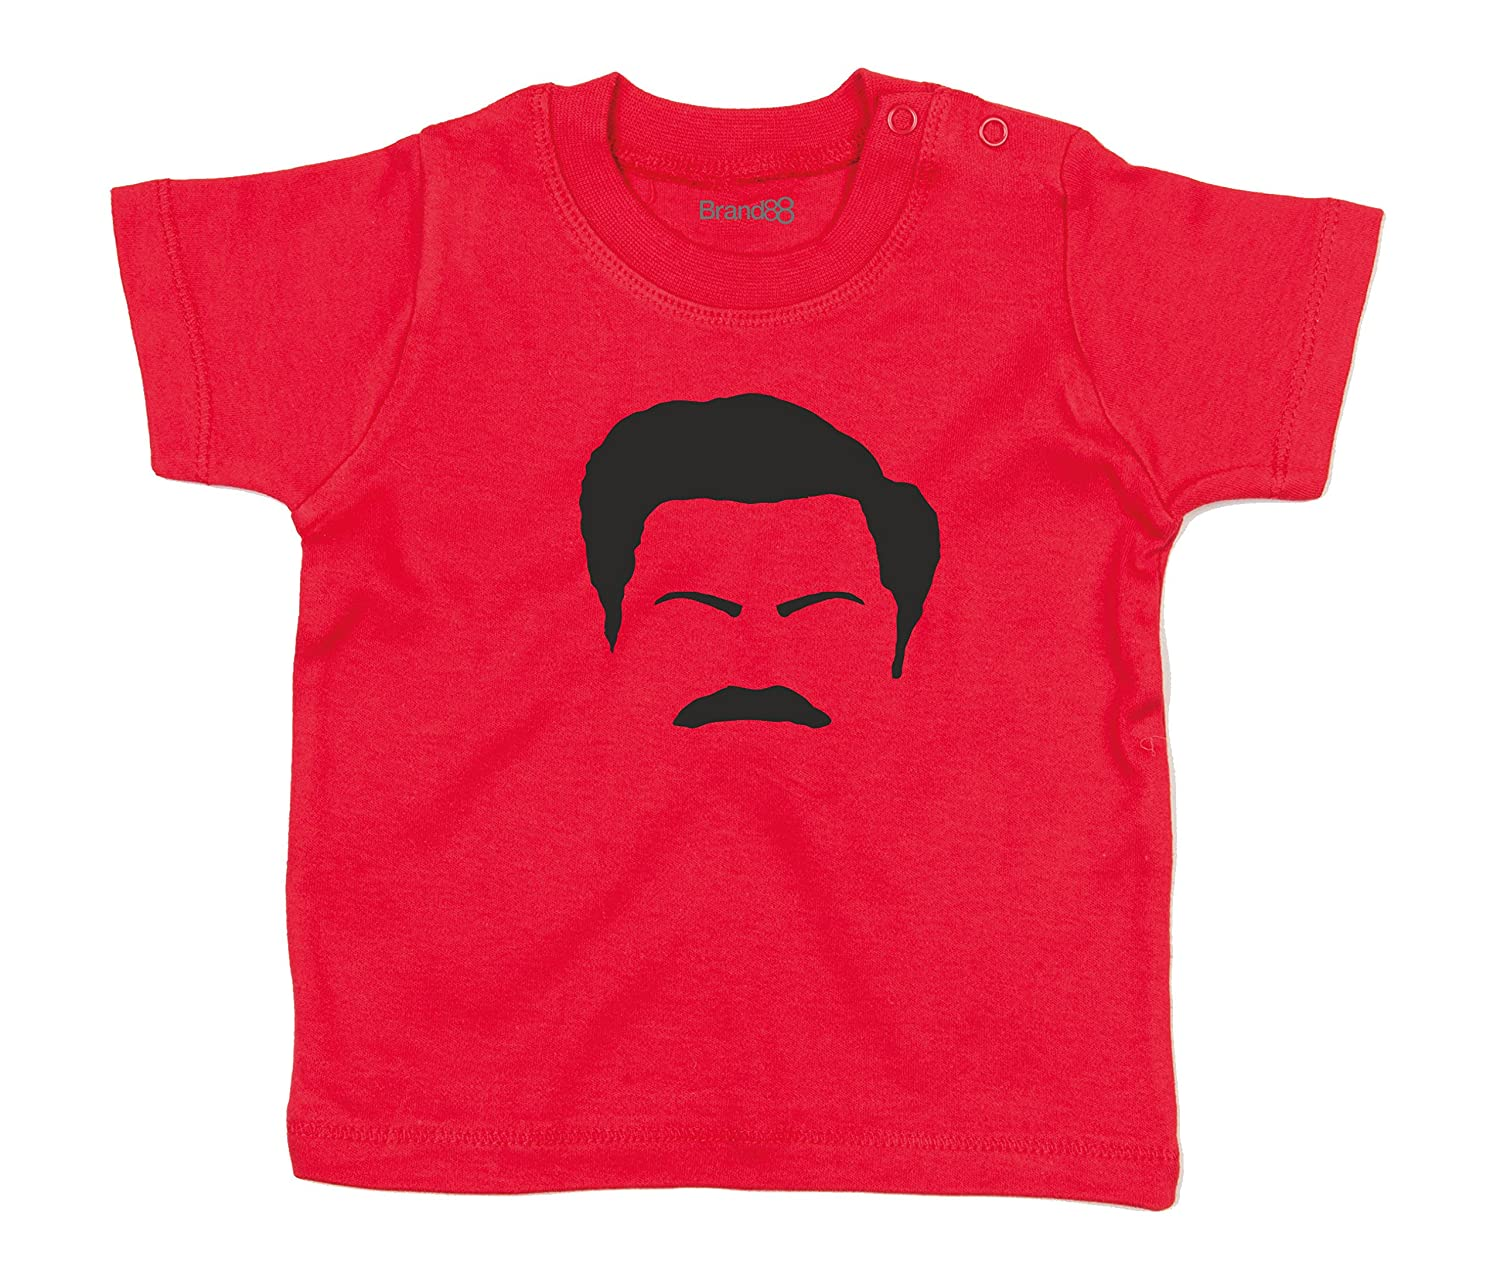 Baby T-Shirt Brand88 Ron Swanson Facial Features